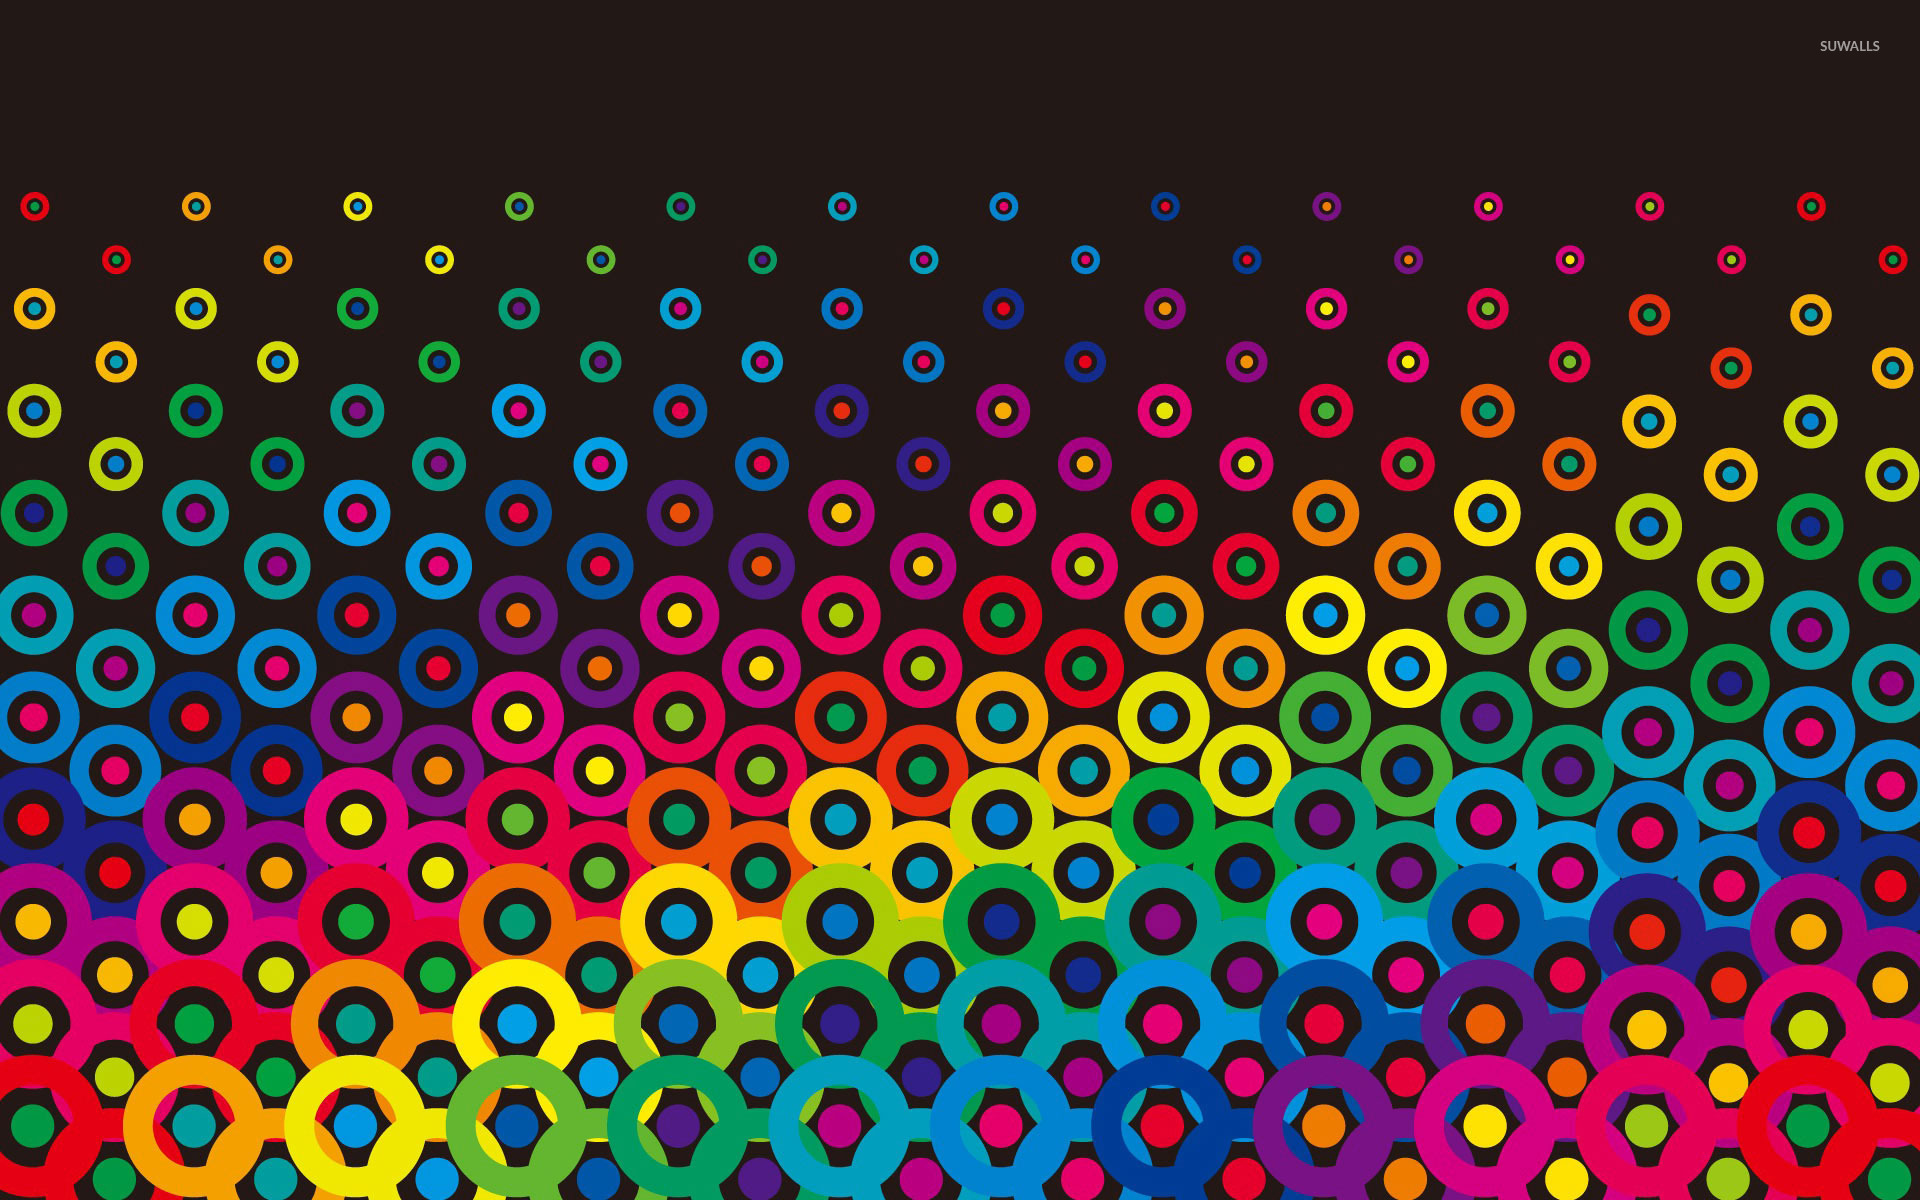 Neon Fall Wallpapers Colorful Retro Circles Wallpaper Vector Wallpapers 18628